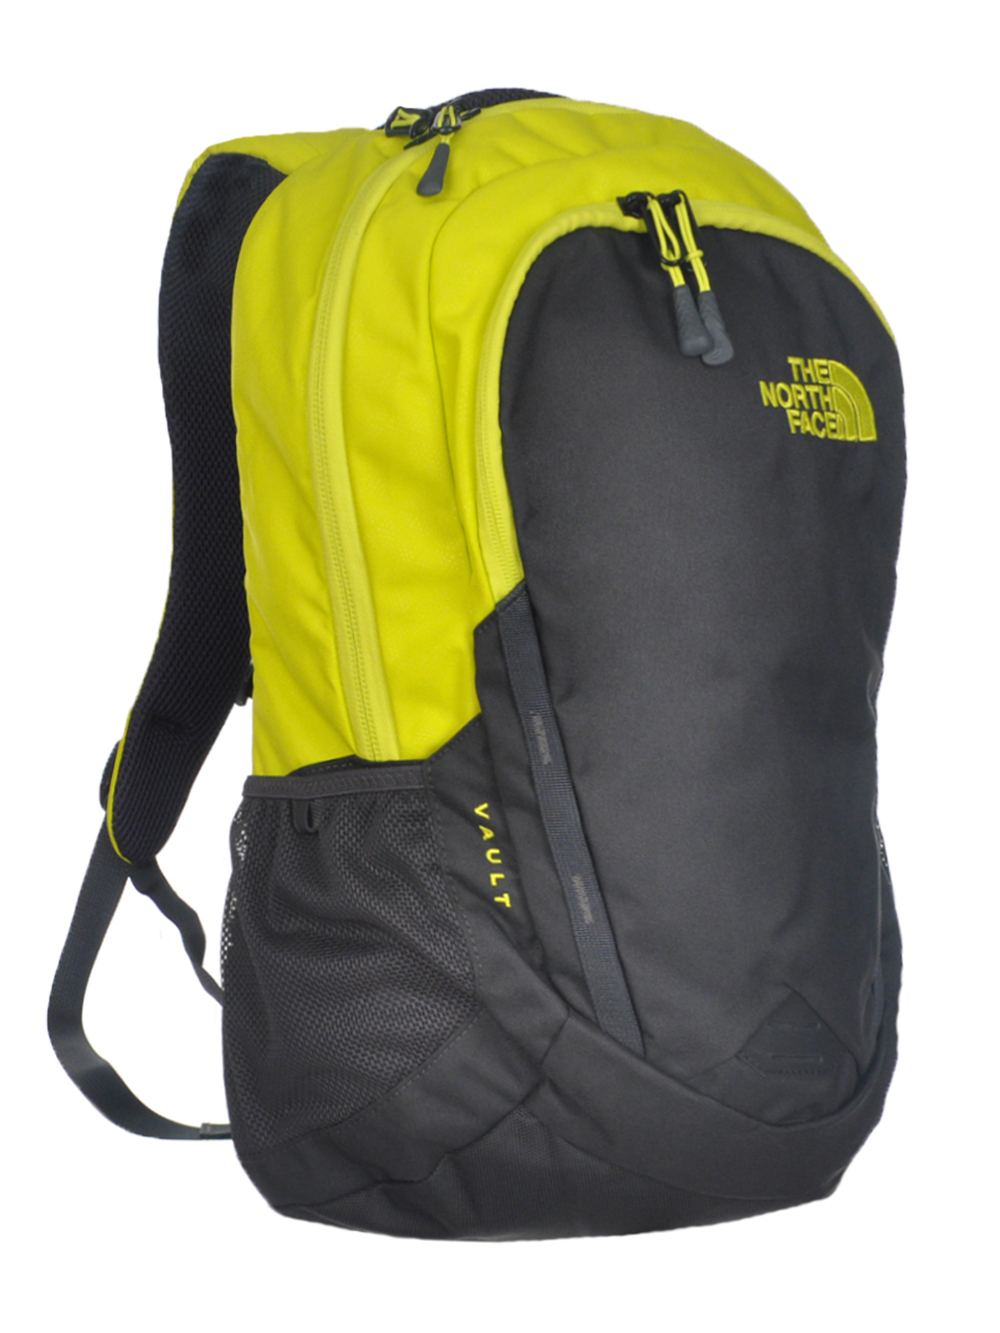 The North Face Vault Backpack - sulphur spring green/asphalt grey, one size